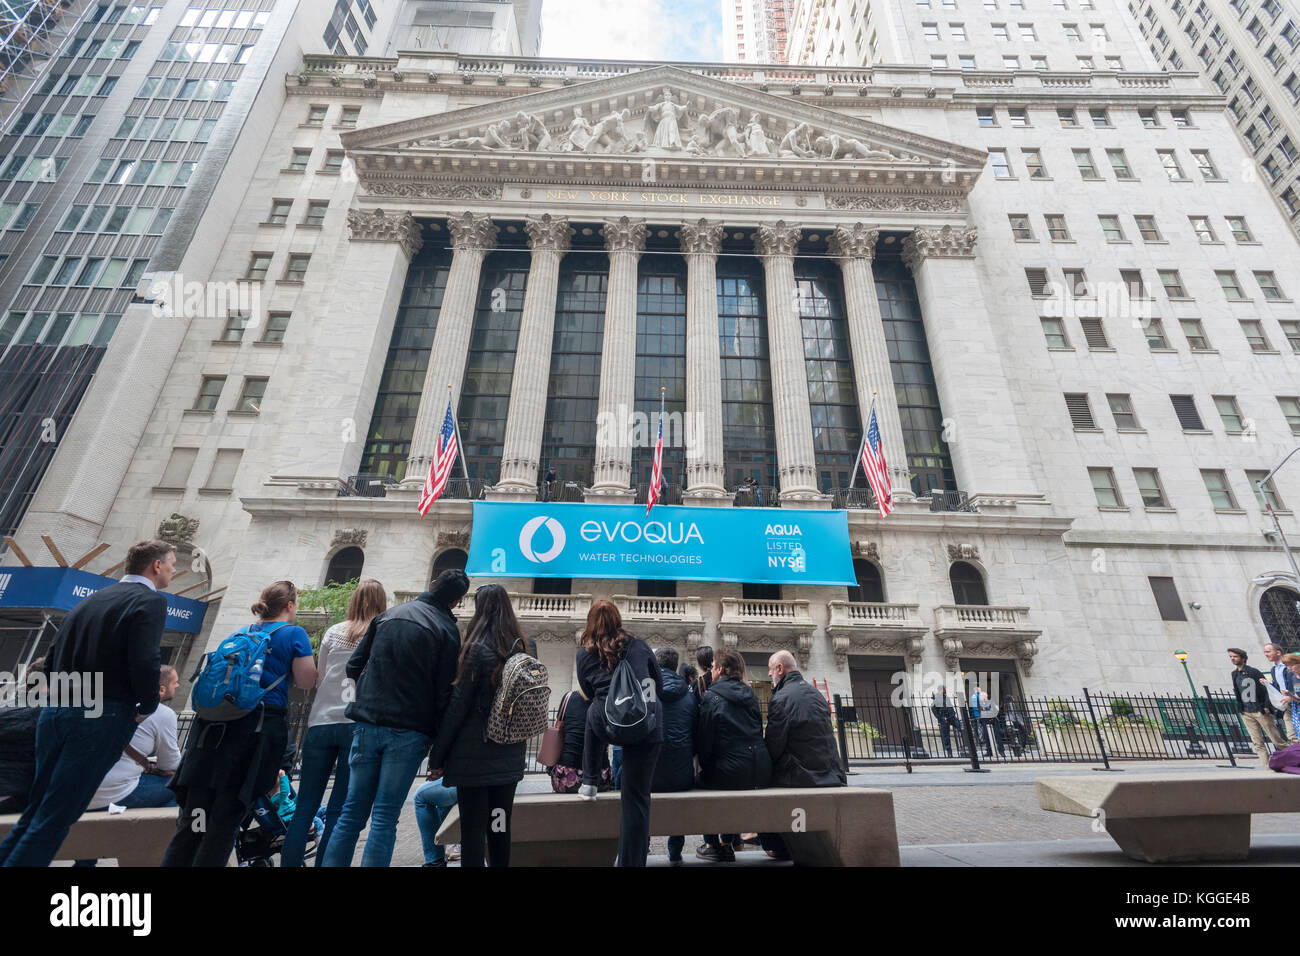 At the fitbit ipo celebration at new york stock exchange on thursday - The New York Stock Exchange In Lower Manhattan Is Decorated For The Initial Public Offering Of